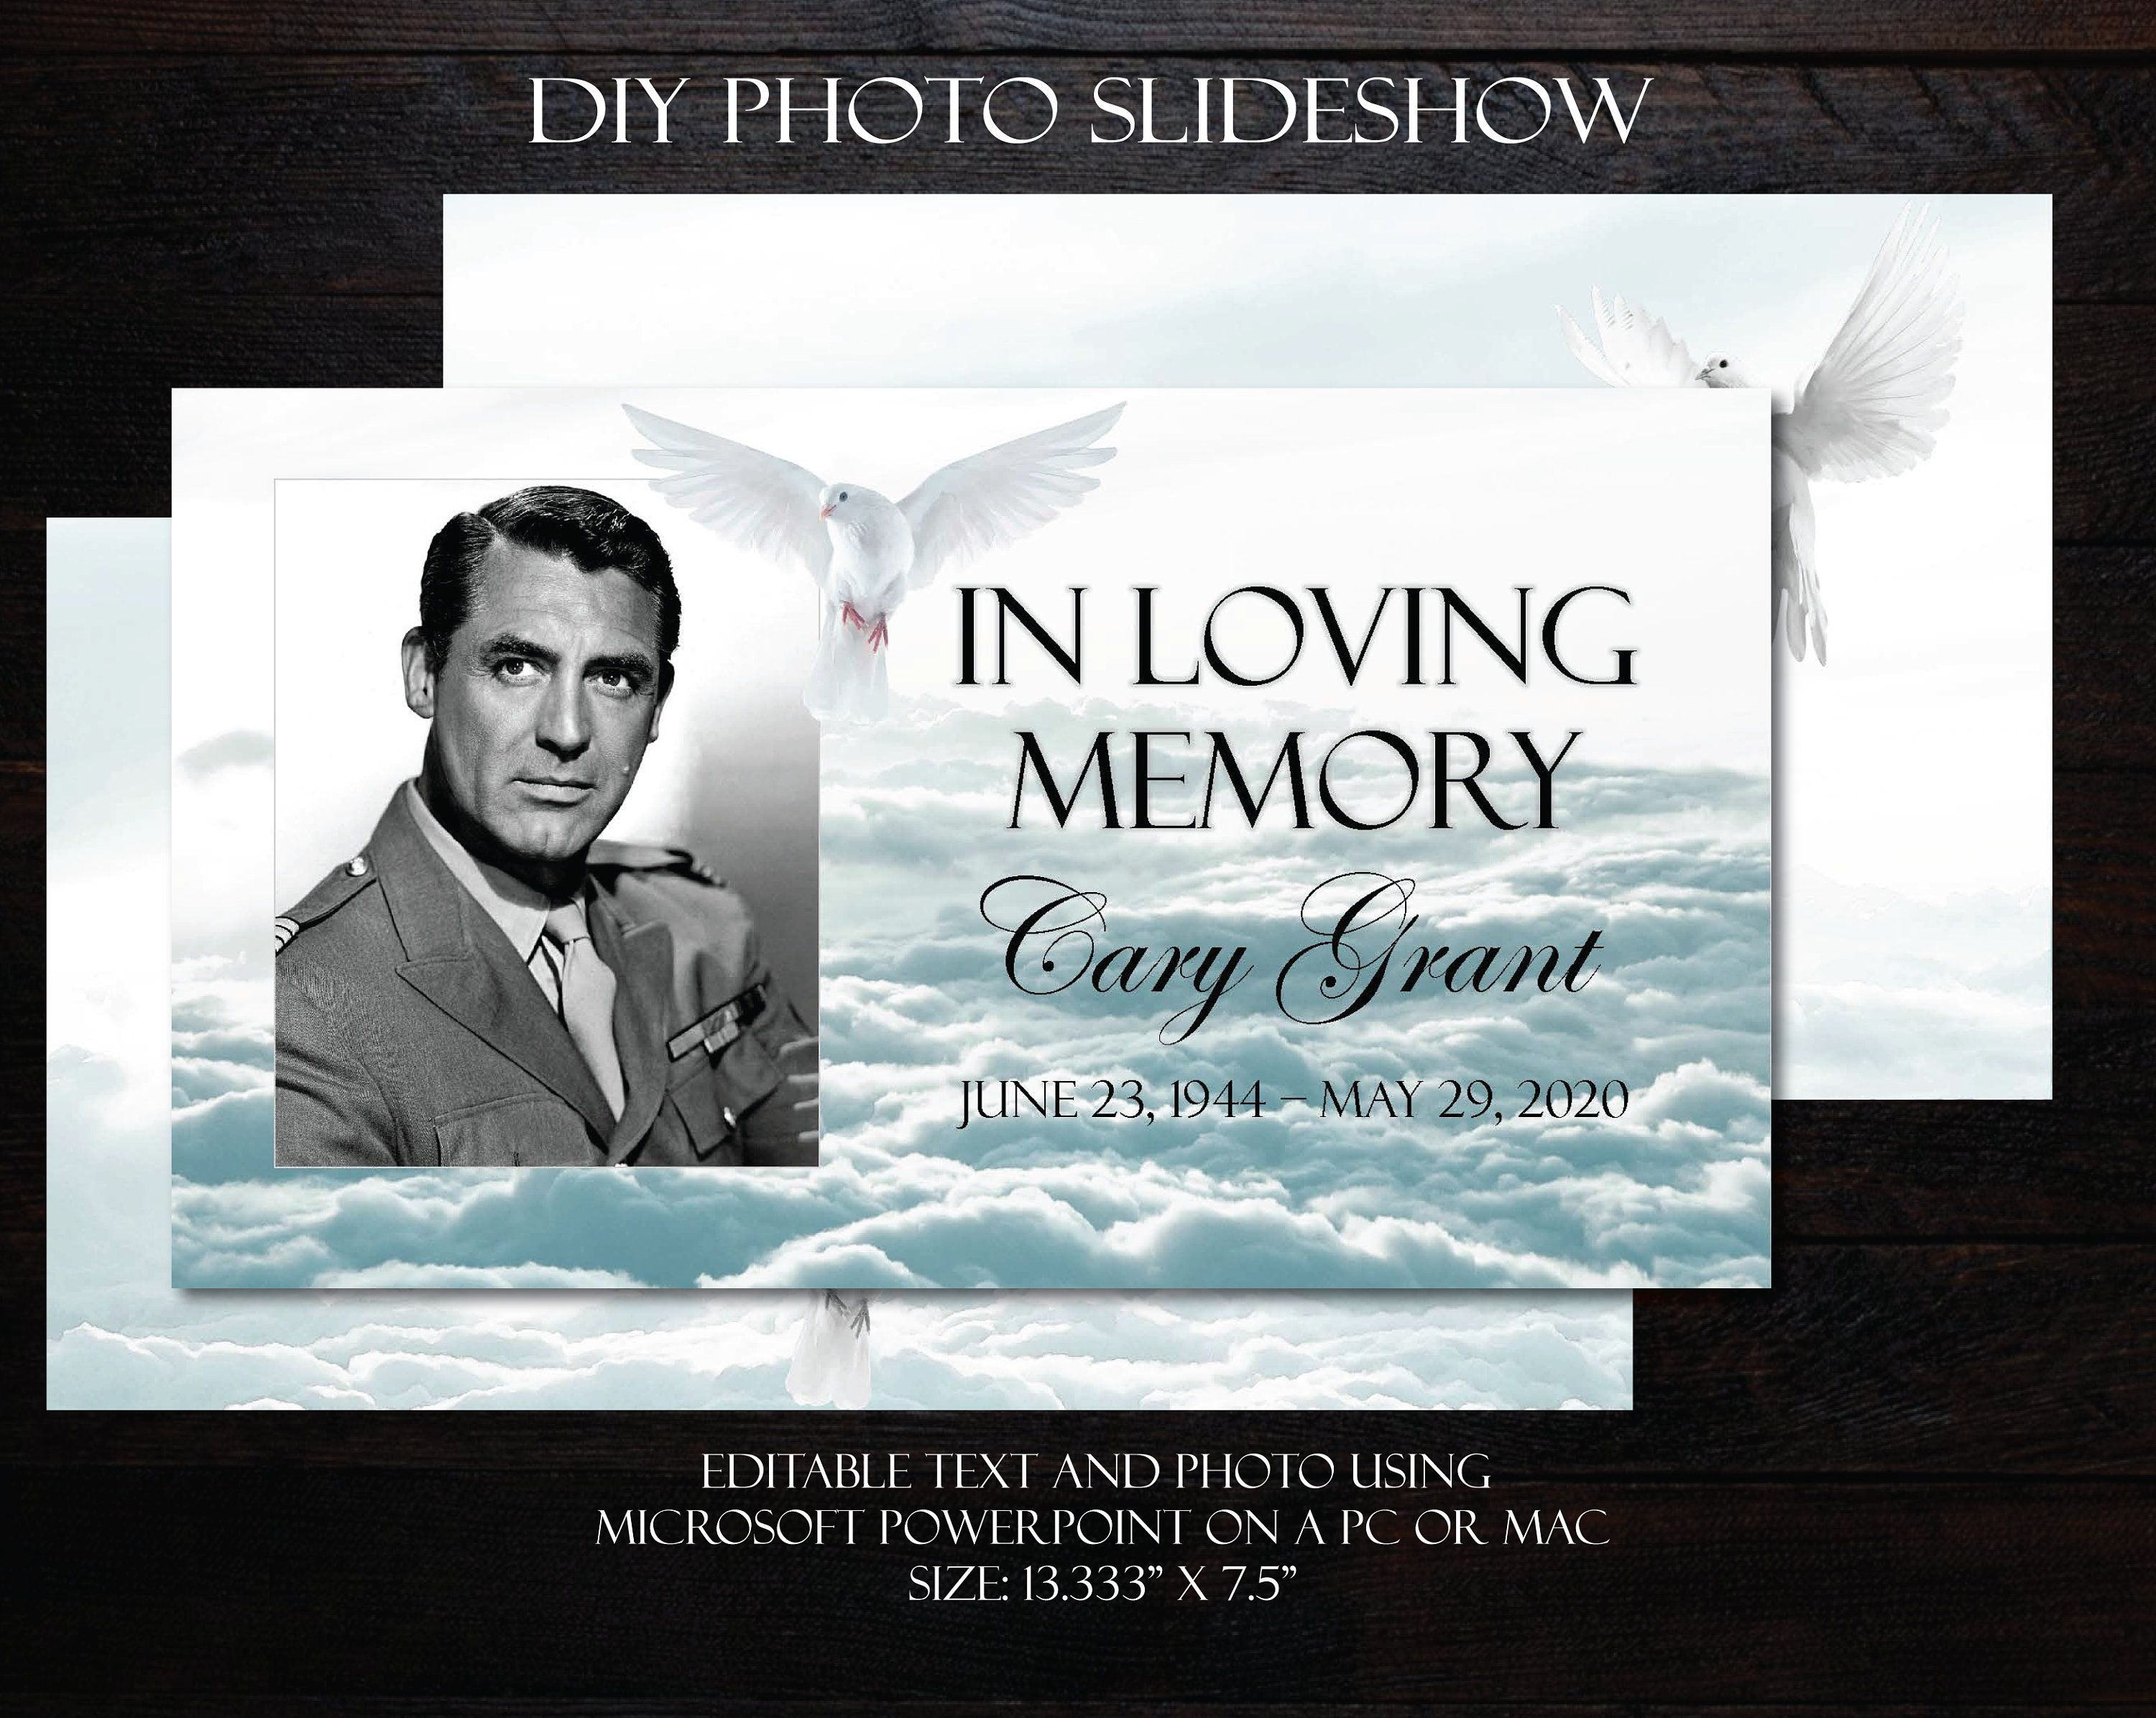 001 Incredible In Loving Memory Powerpoint Template Free Download High Def Full